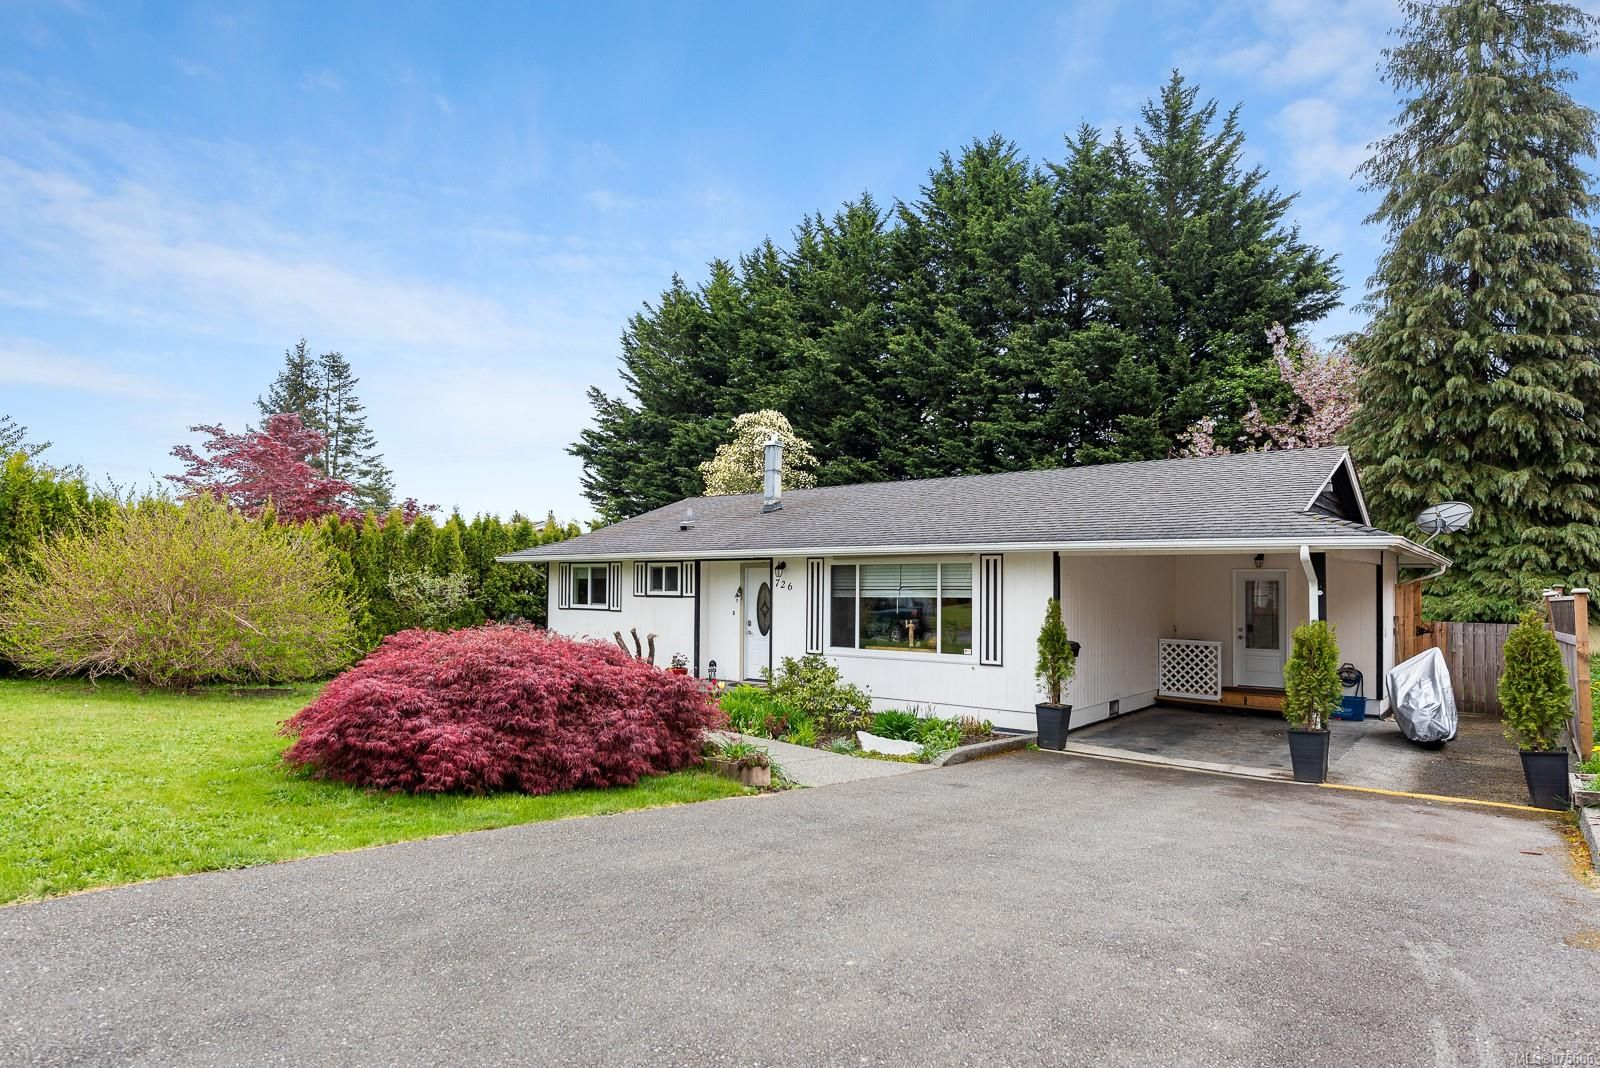 Main Photo: 726 19th St in : CV Courtenay City House for sale (Comox Valley)  : MLS®# 875666